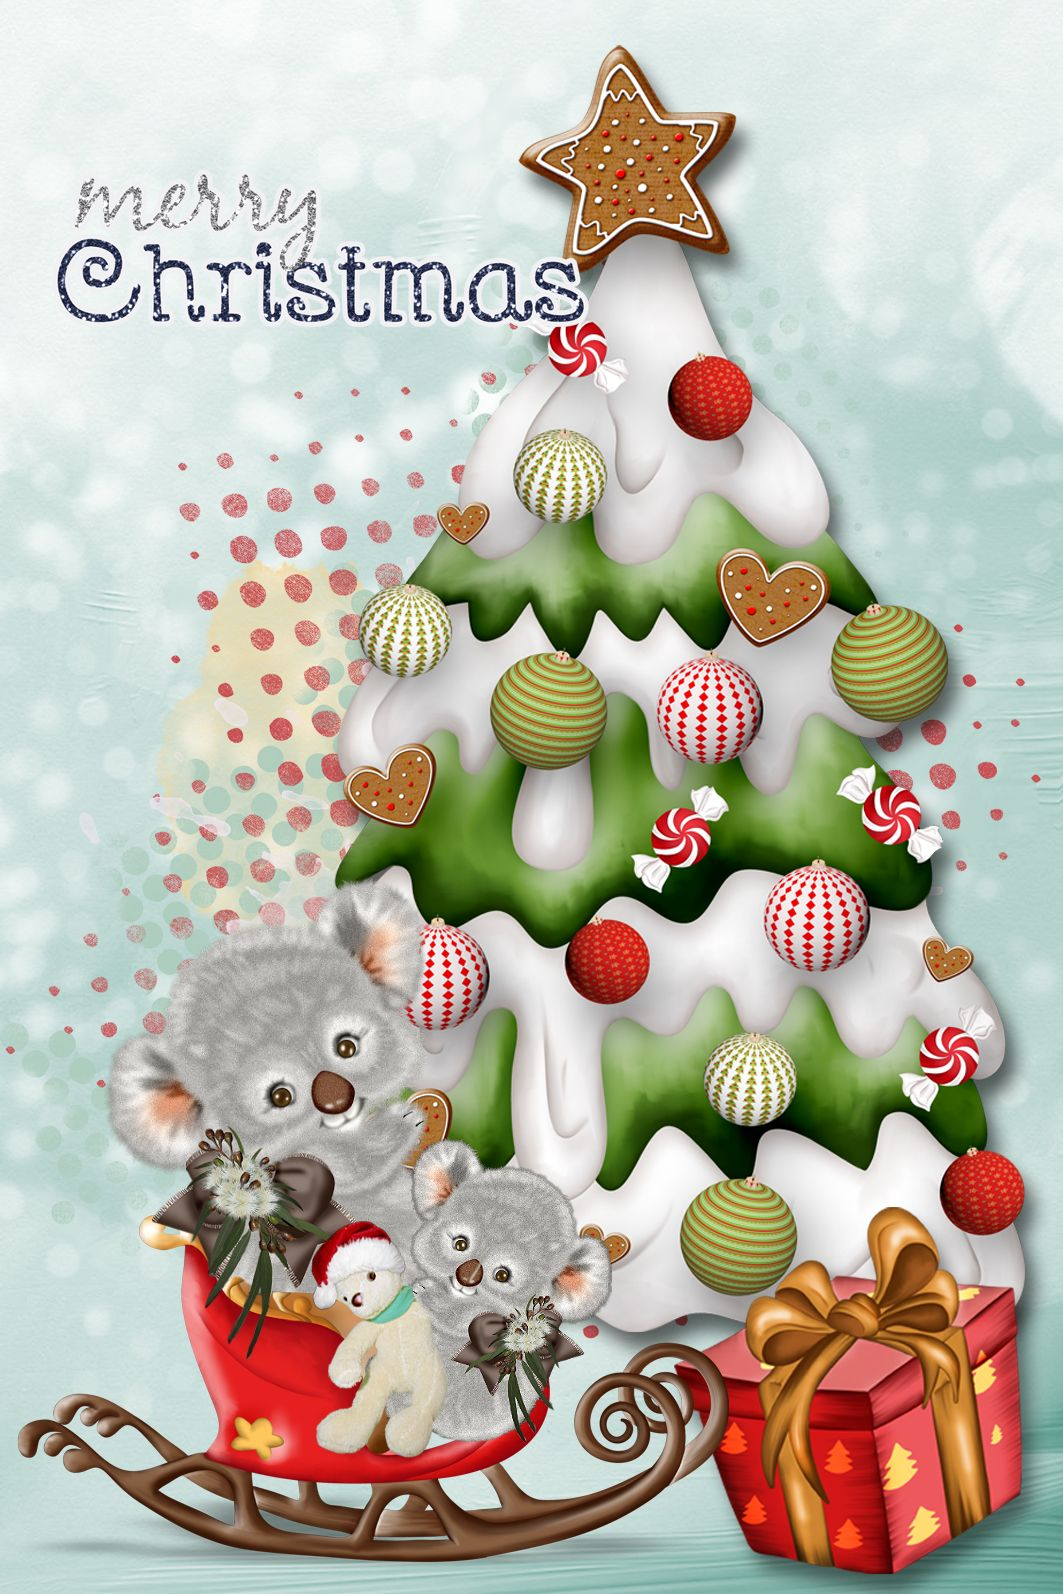 Cute koala christmas card birthday pics for cards pinterest cute koala christmas card kristyandbryce Gallery